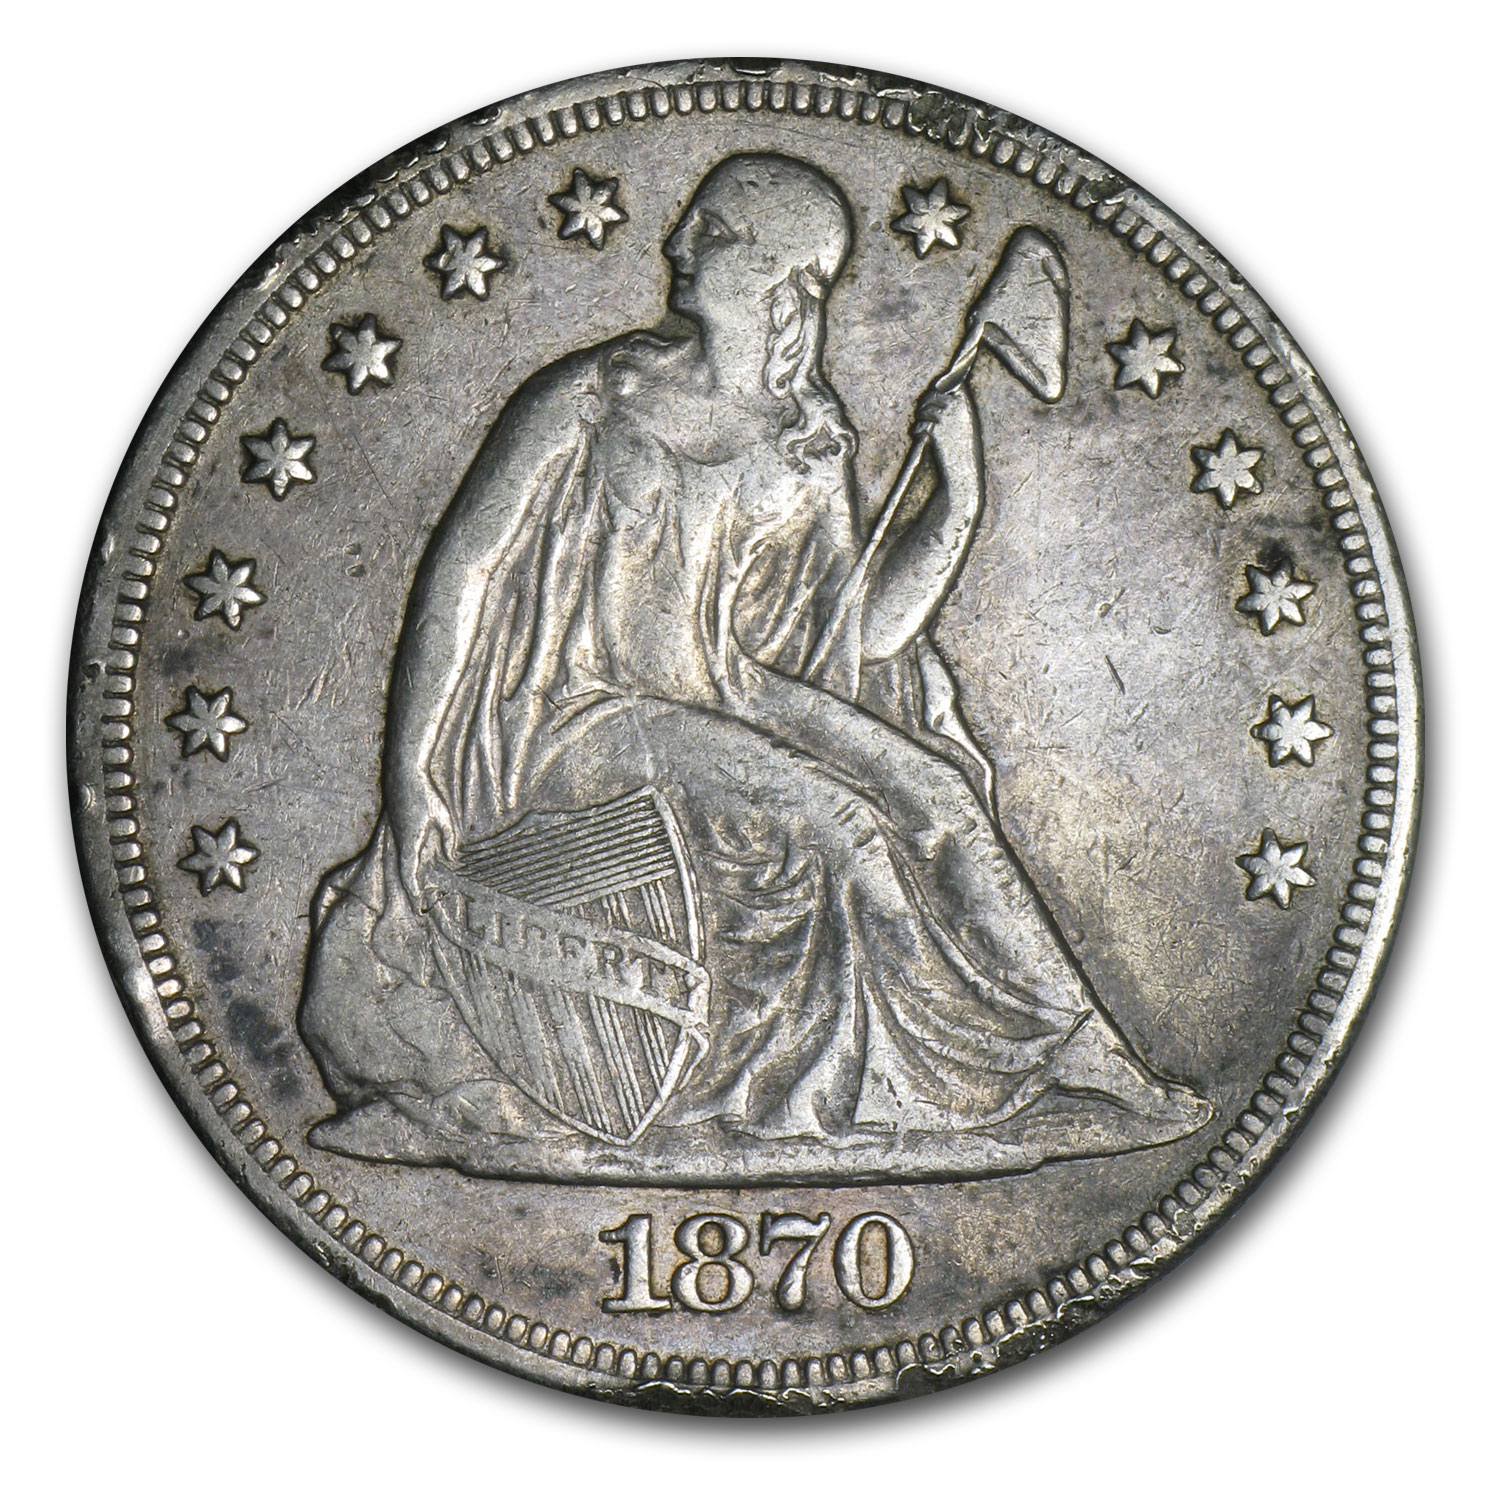 1870-CC Liberty Seated Dollar - Extra Fine Details - Rim Bumps